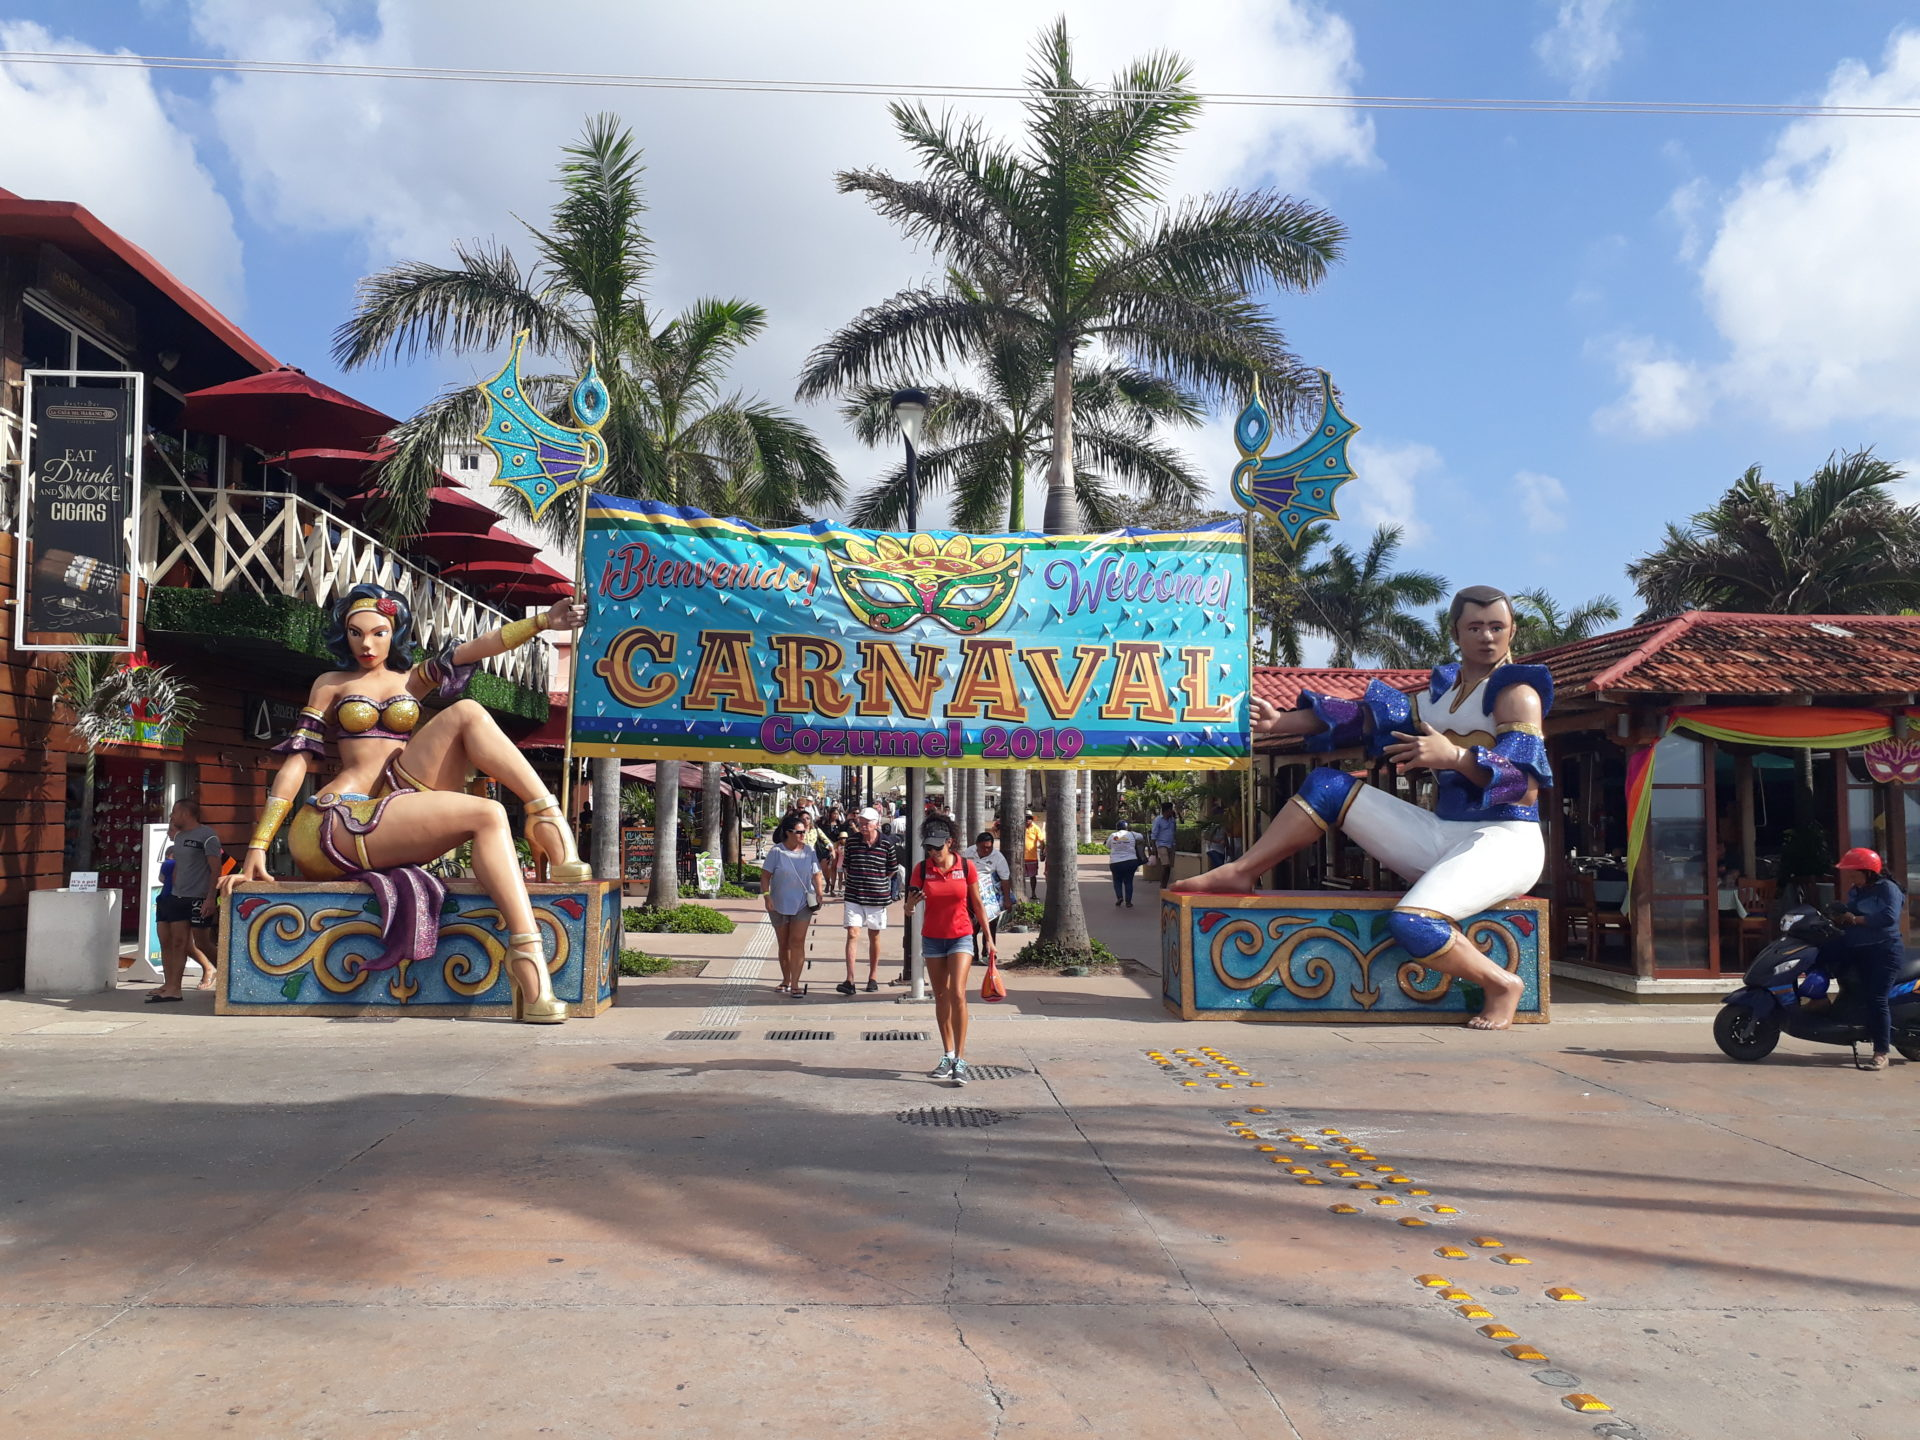 Cozumel festivities – The most important fiestas